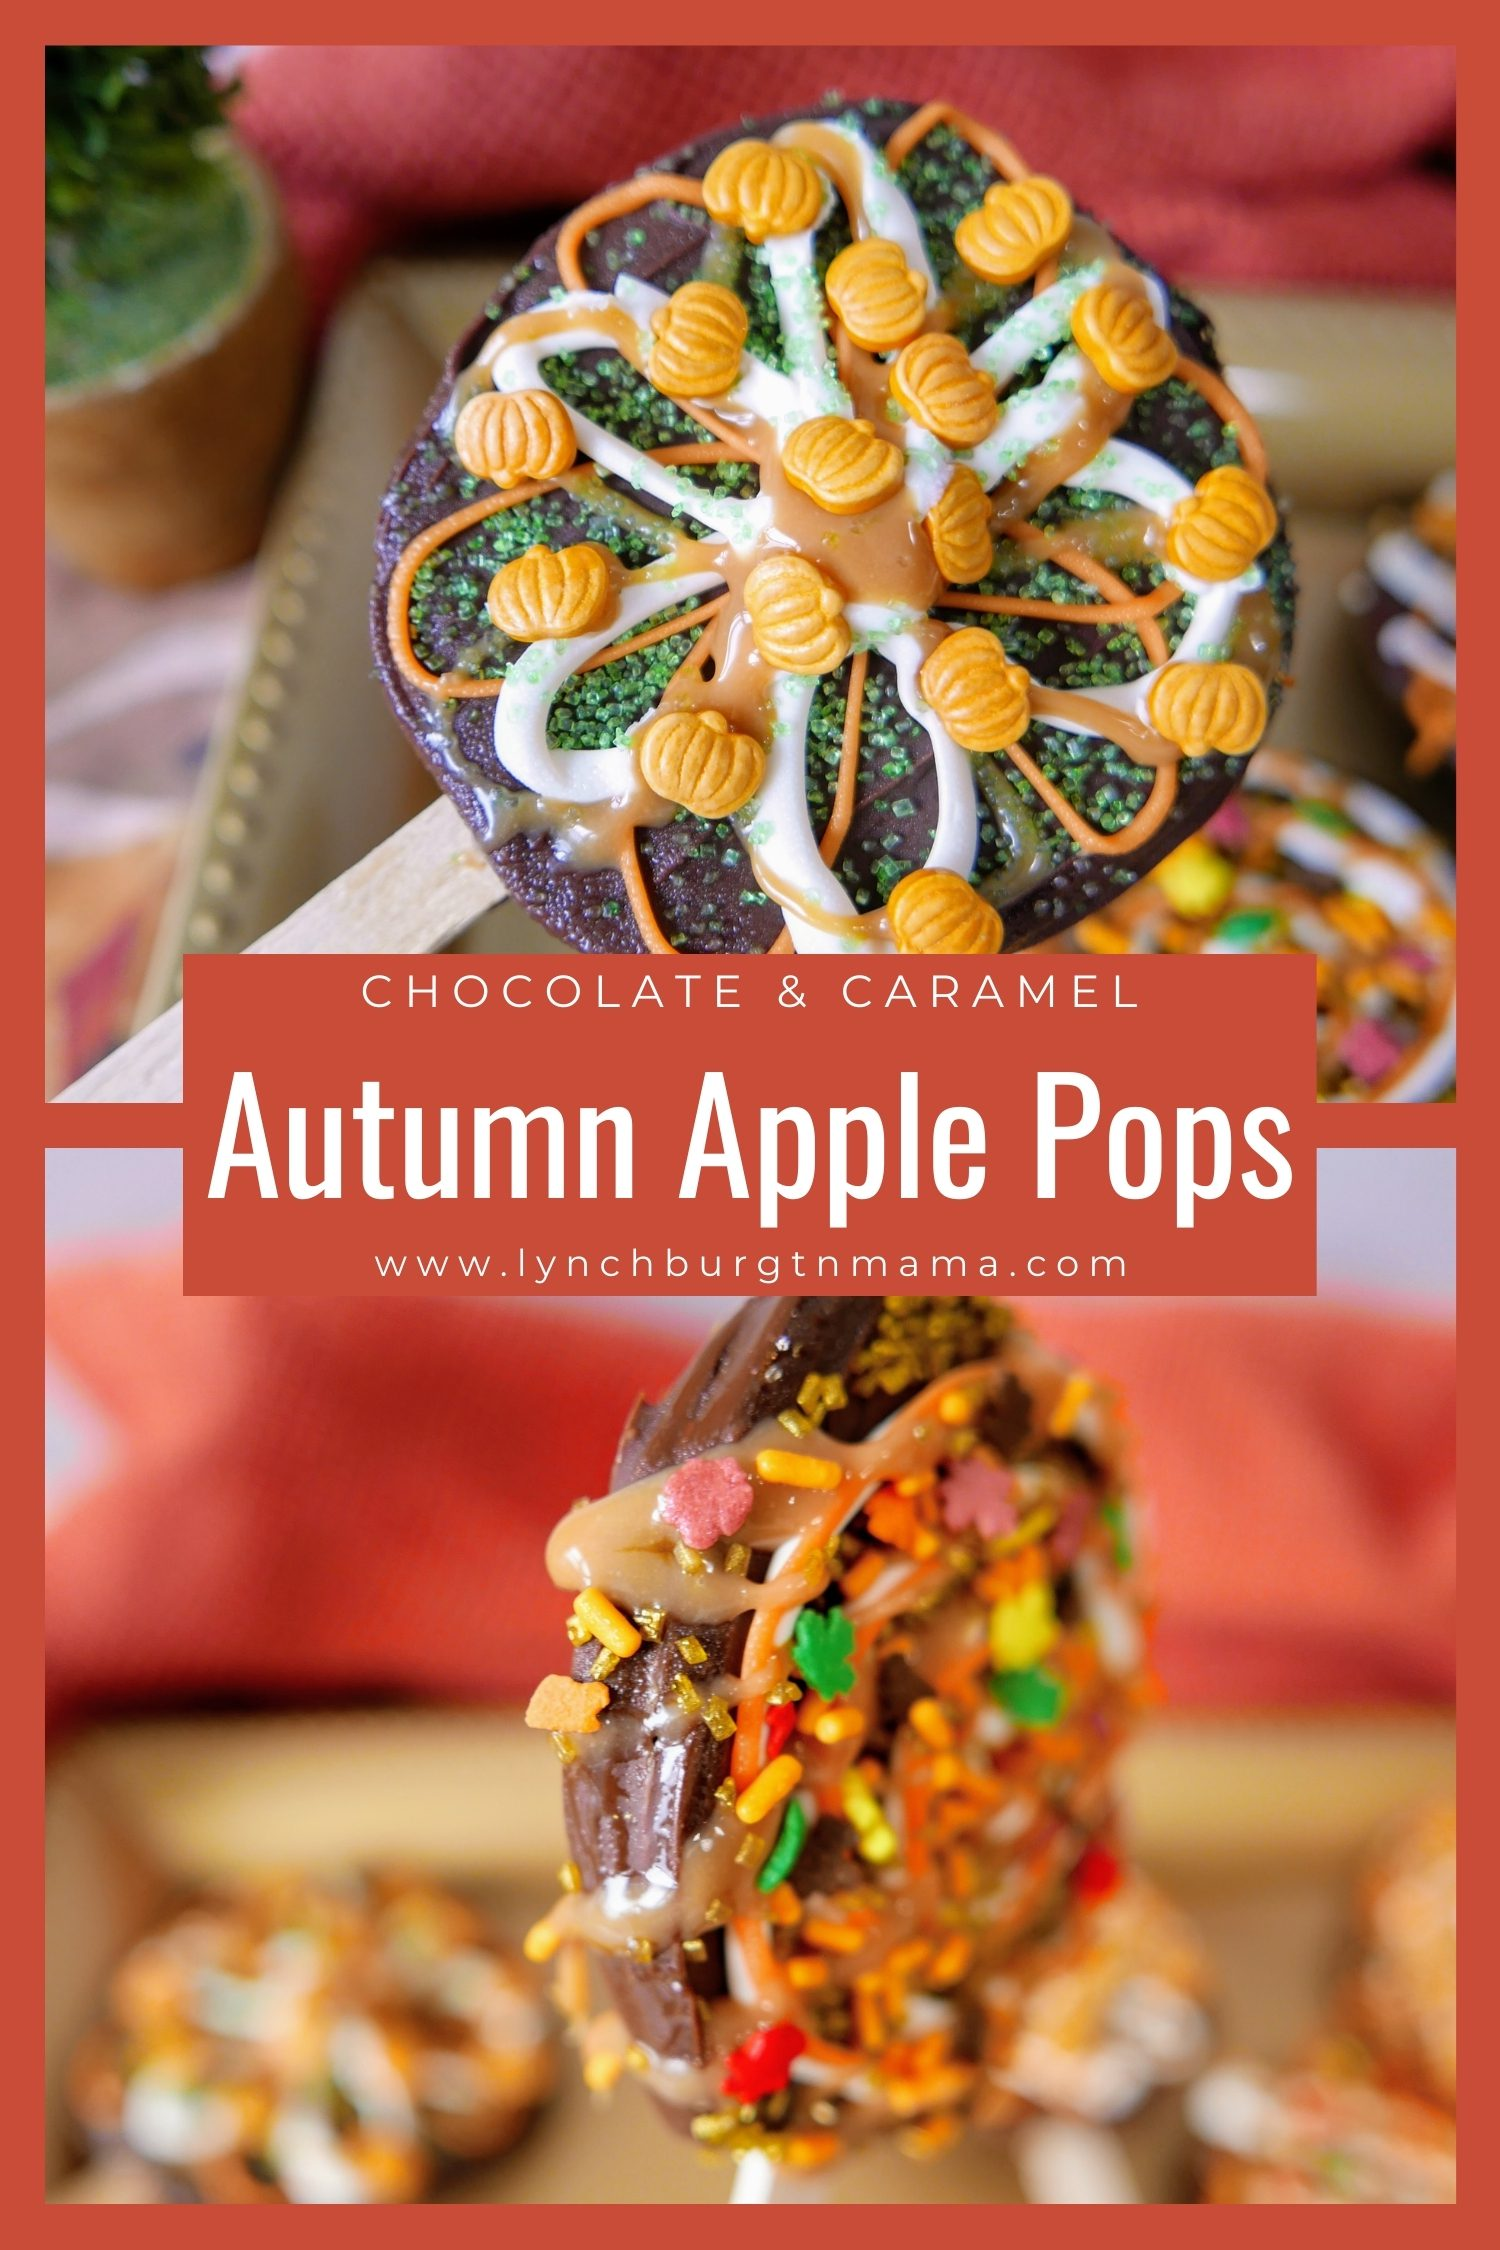 These Seasonal Autumn Chocolate Caramel Apple Pops are a little easier for all ages to handle than a full-sized dipped apple. They are fun to decorate and make your own with chocolate, caramel, sprinkles, and more!